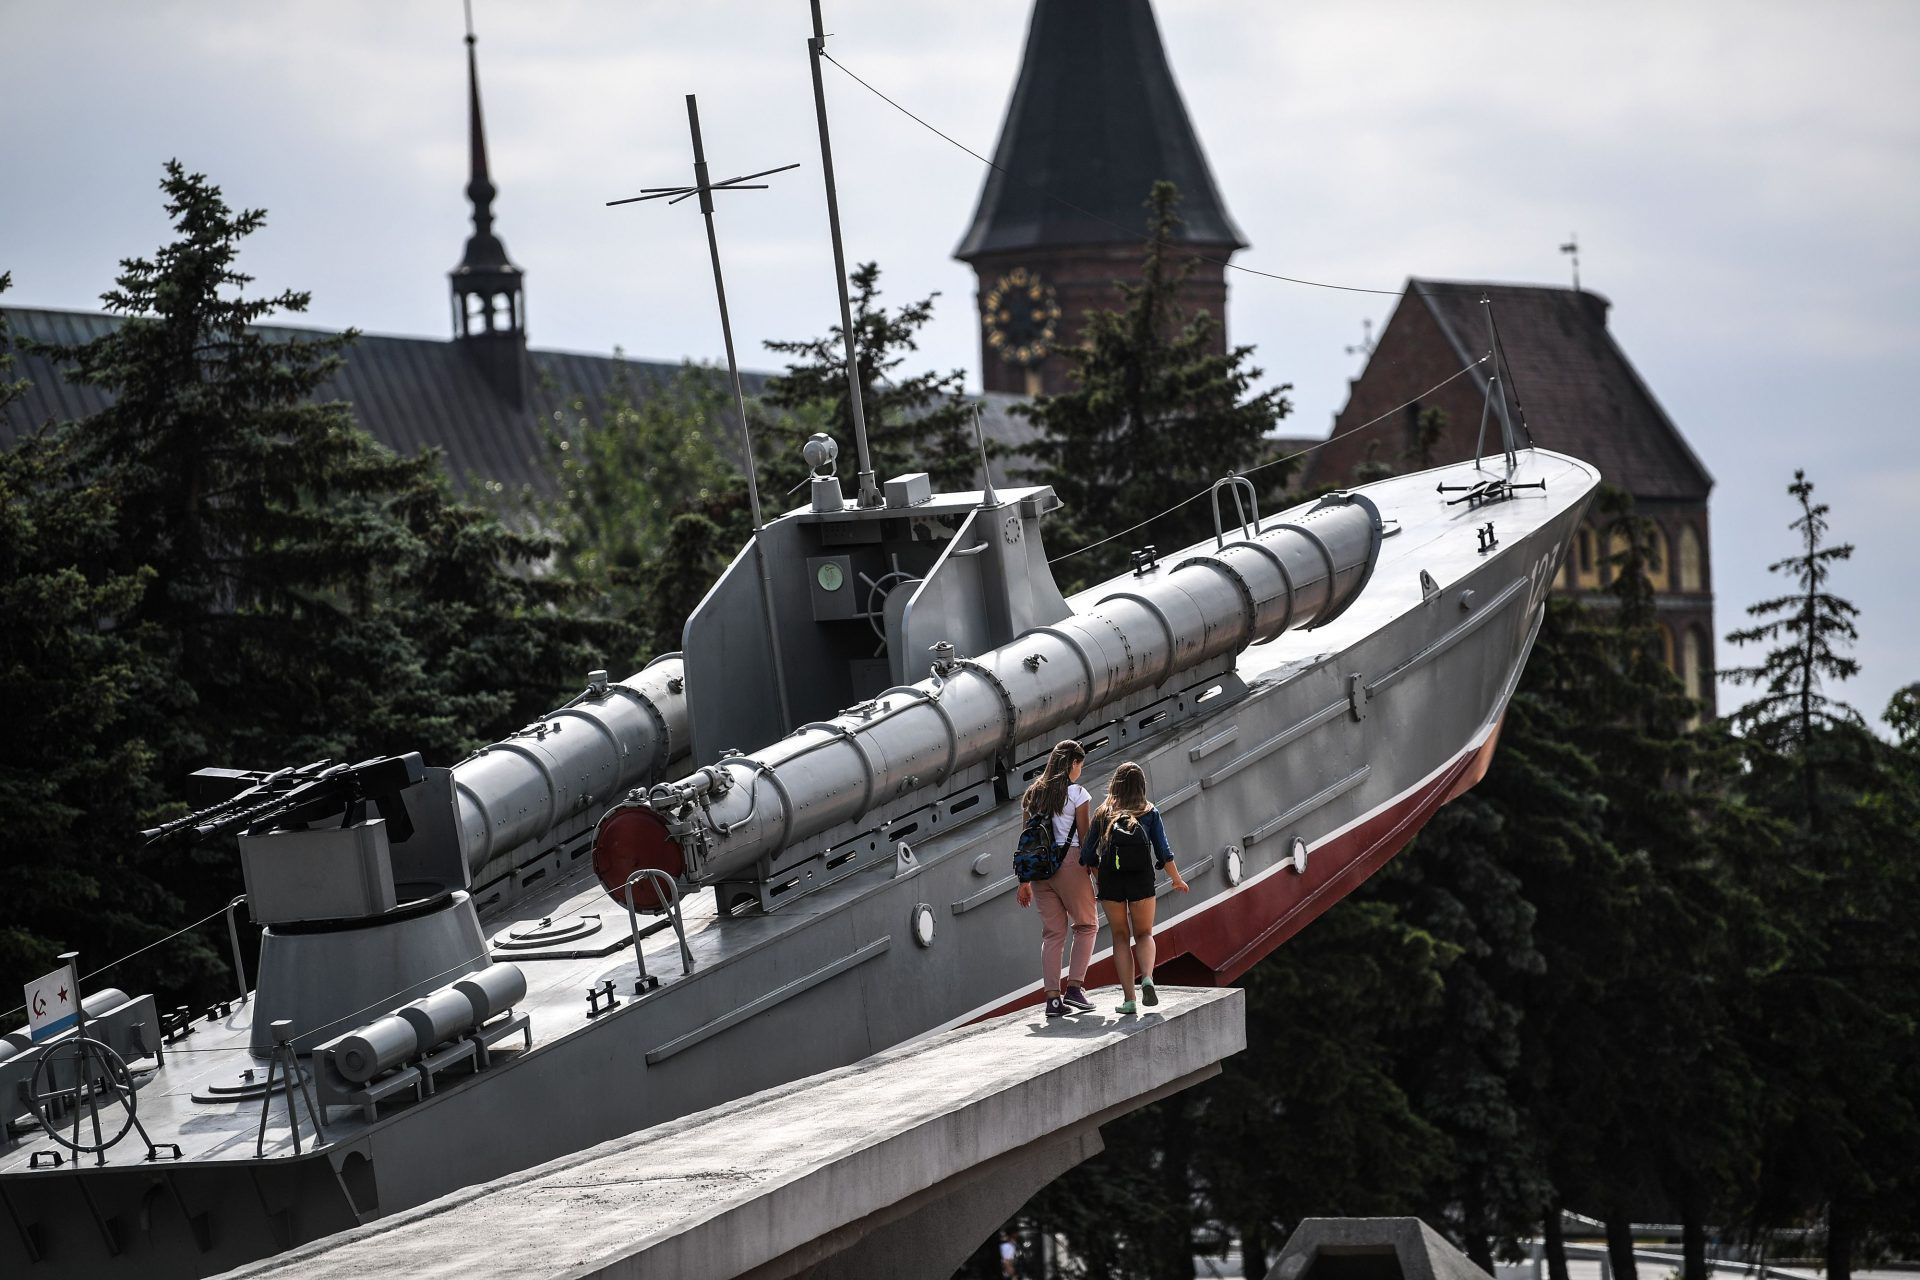 Children walk next to a memorial featuring a Soviet torpedo boat from the Second World War in Kaliningrad. Photo: Ozan Kose/AFP/Getty Images